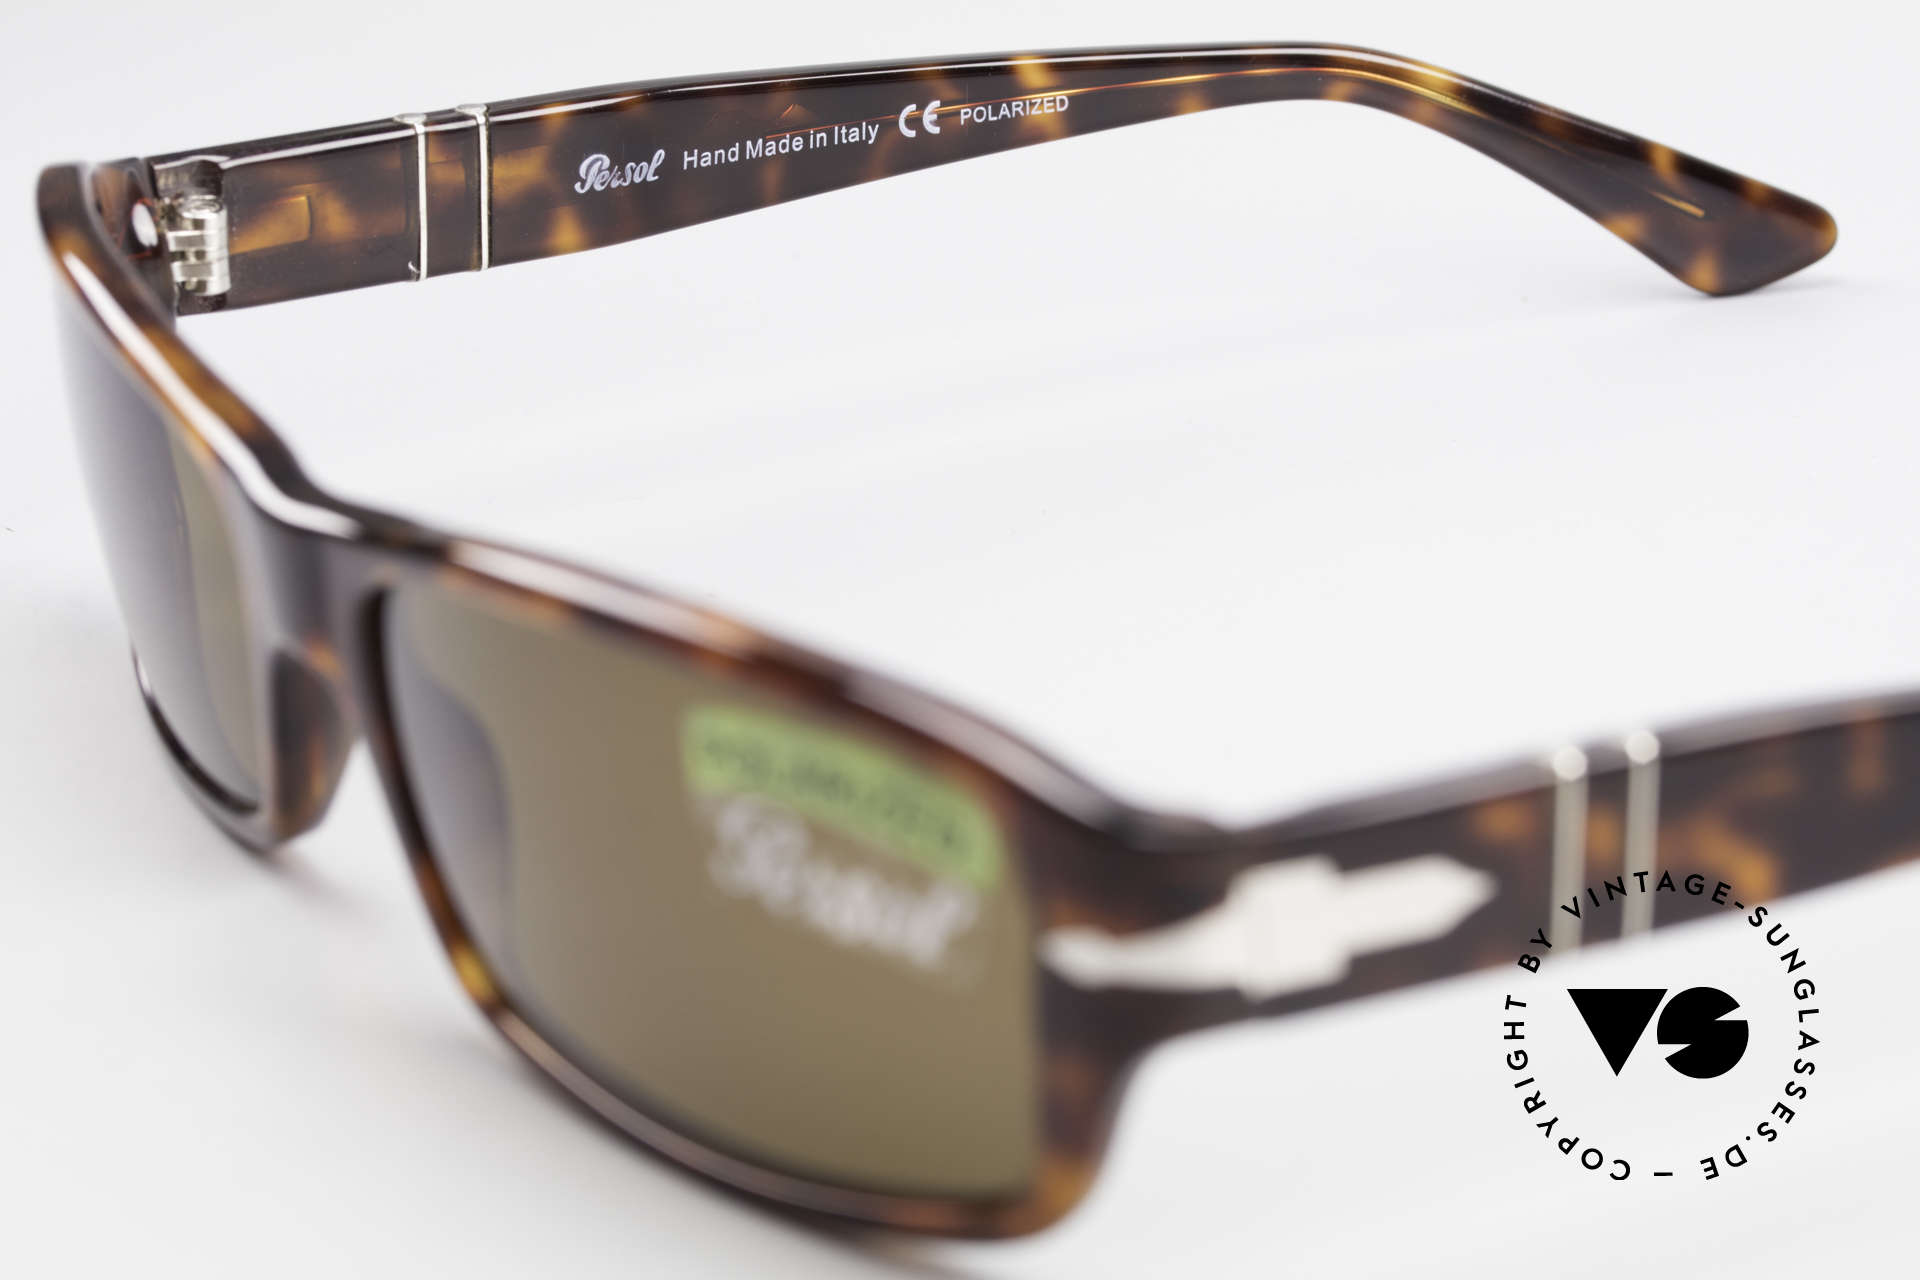 Persol 2786 Classic Sunglasses Polarized, sun lenses could be replaced with prescriptions, Made for Men and Women